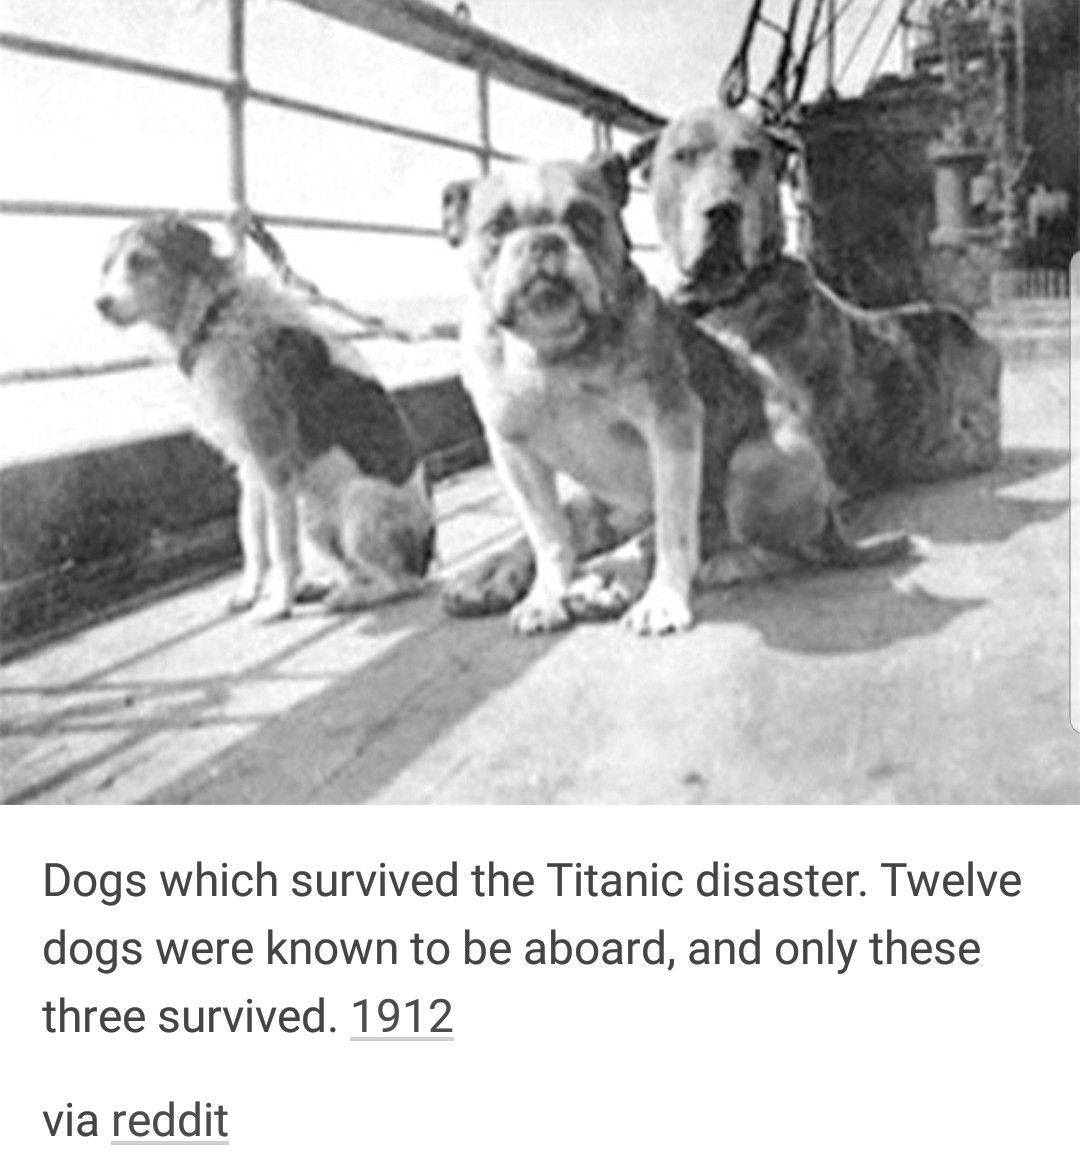 H M S Titanic Survivors Only 3 Of 12 Dogs Survived Titanic Deaths Titanic History Titanic